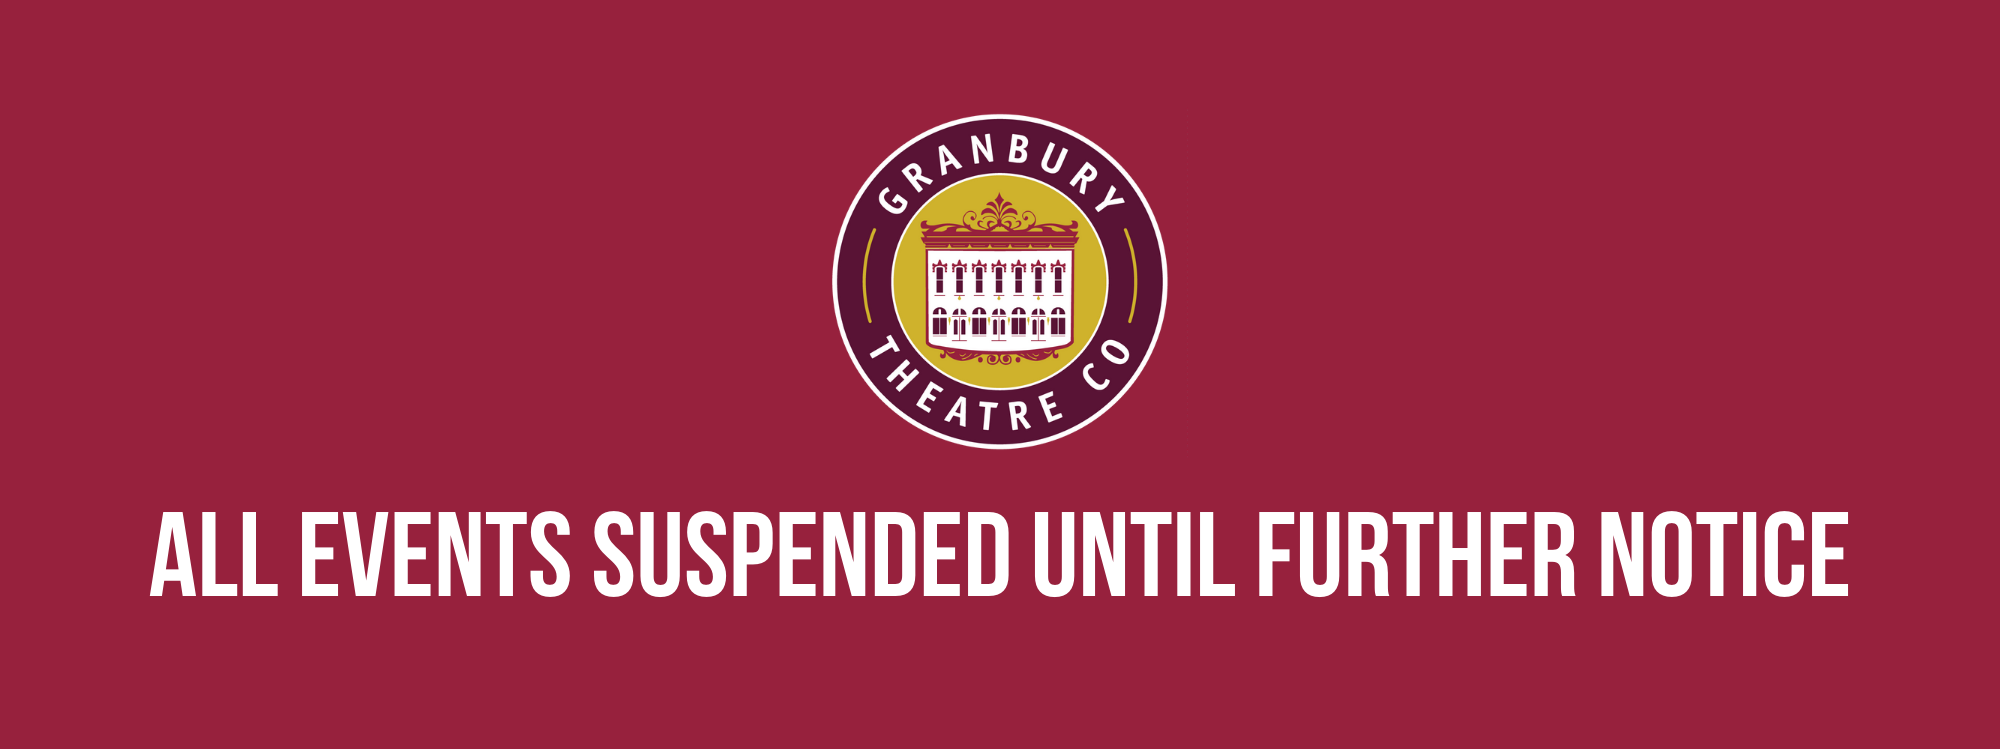 All Events Suspended Until Further Notice